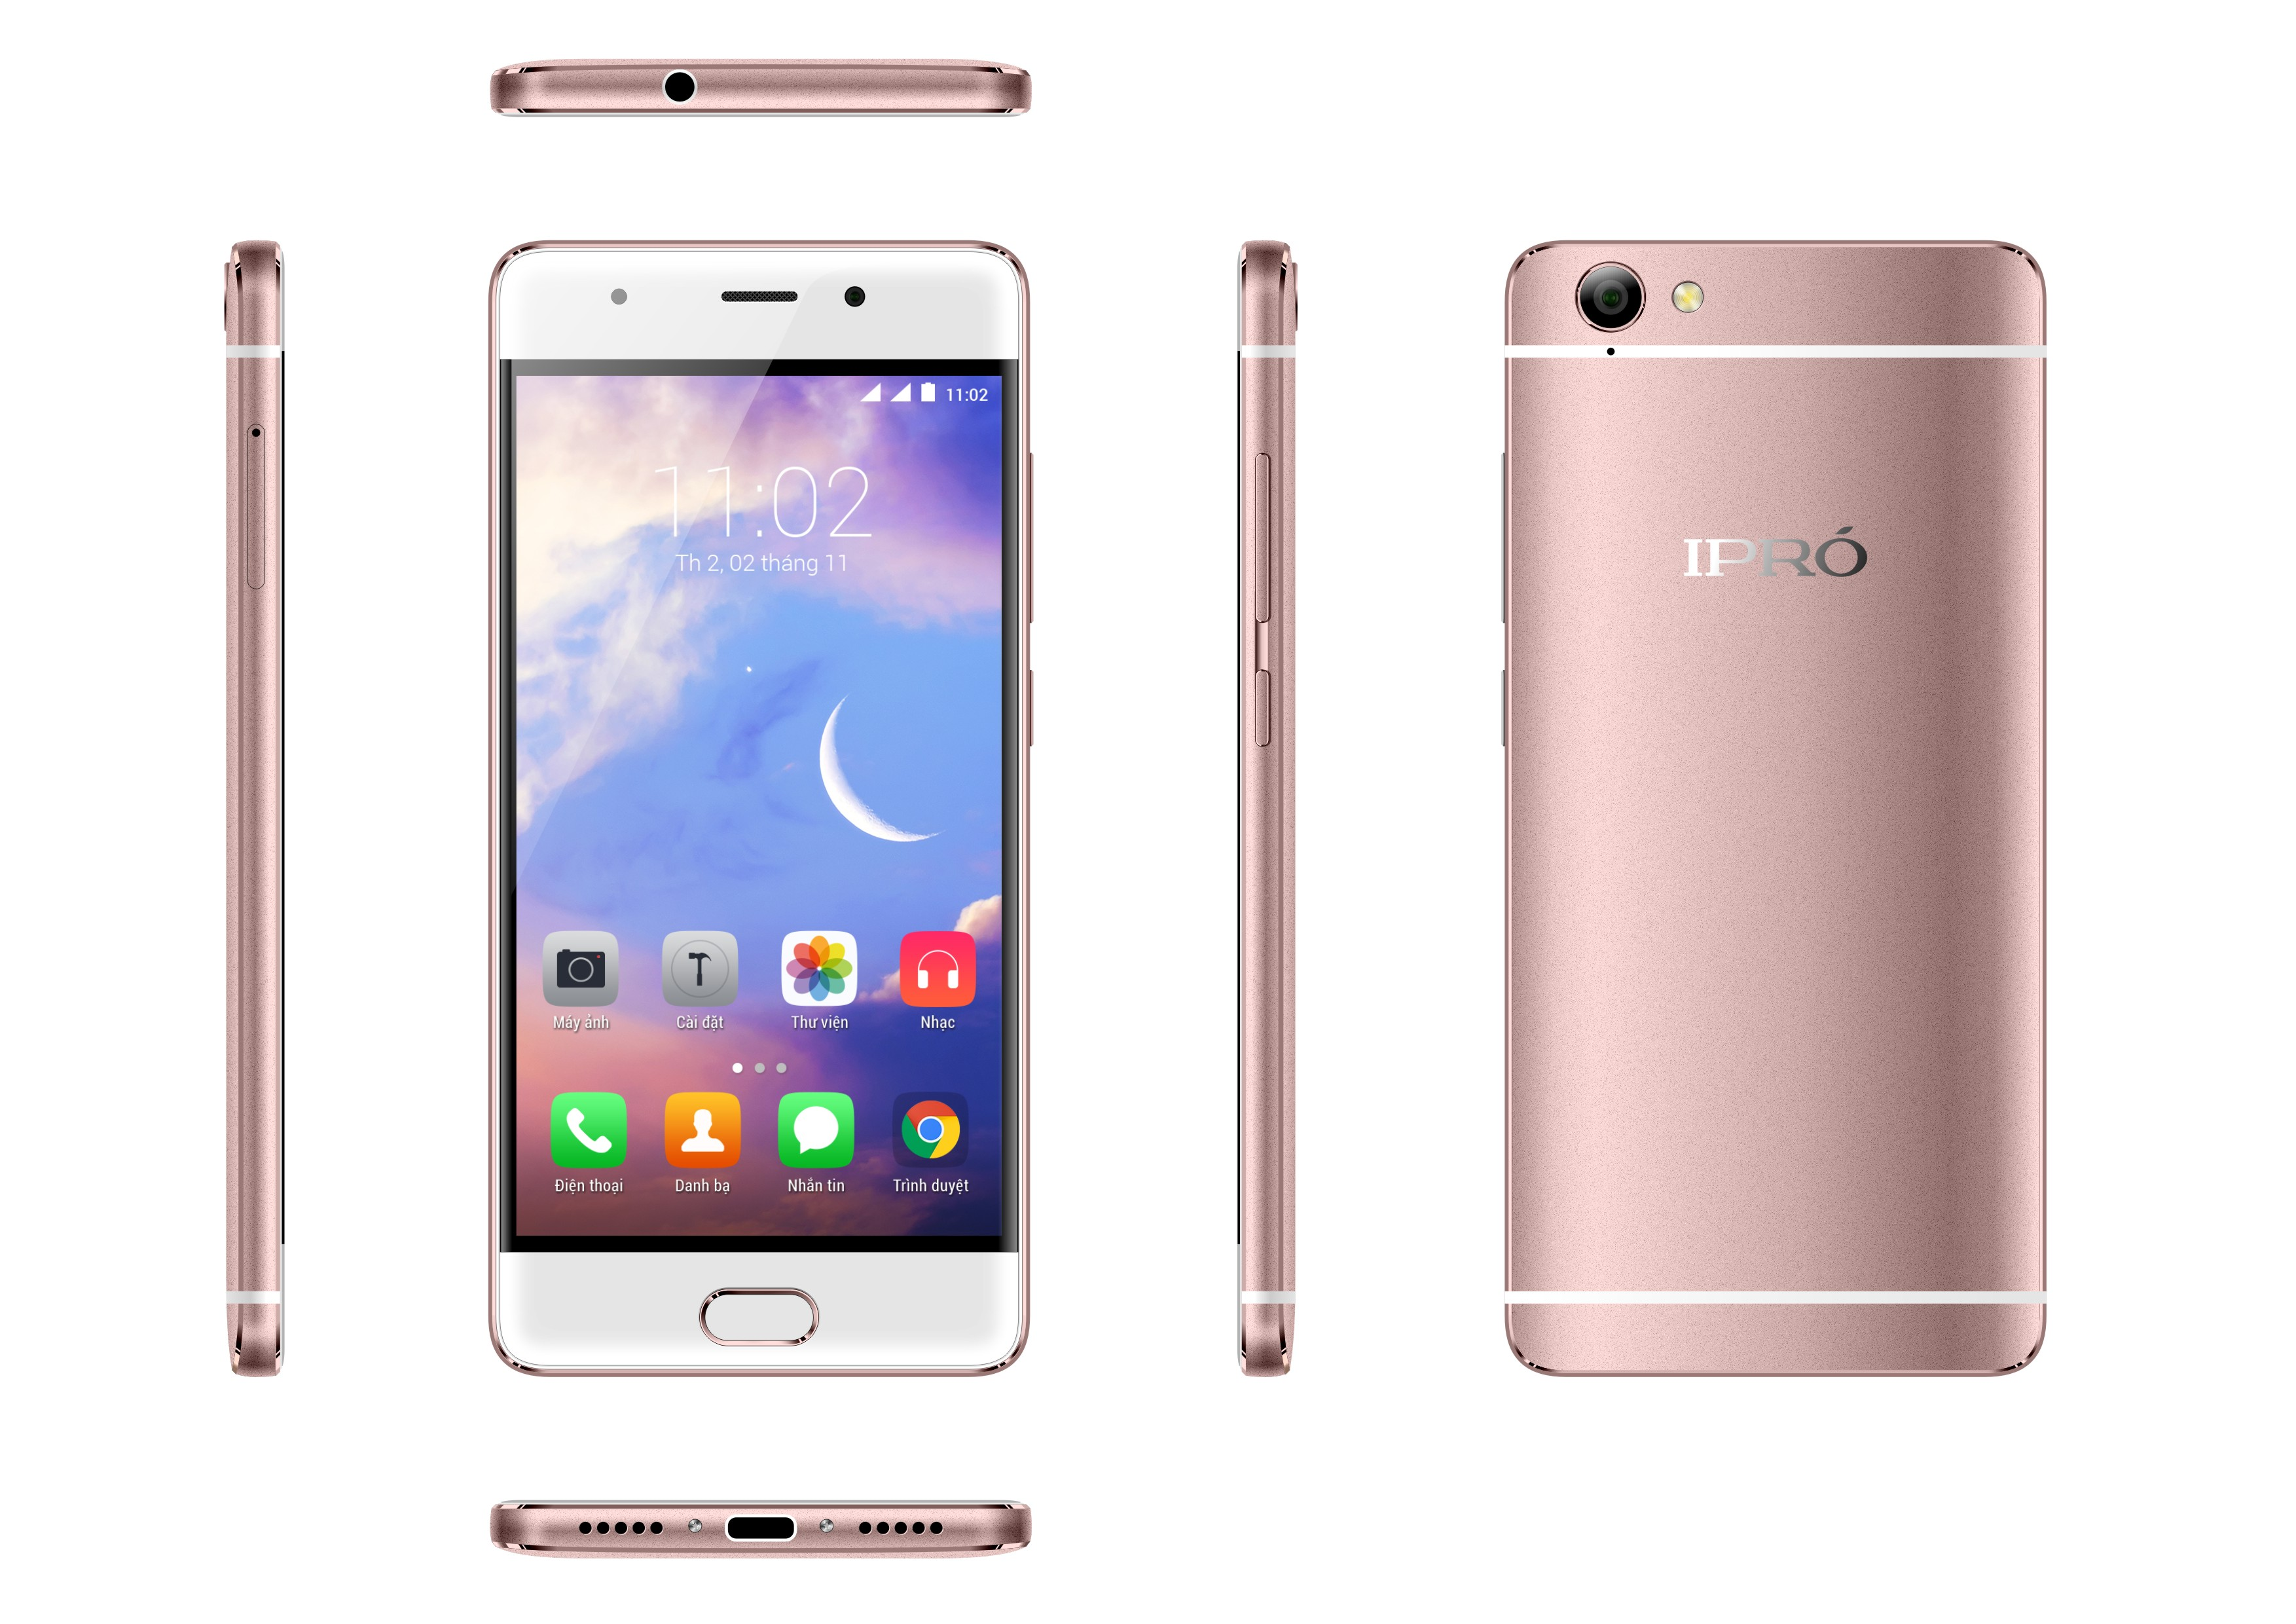 Best Sales Produc Android 6.0 MT6735 Oem Smartphone 4G Lte NO Brand Smart Phones